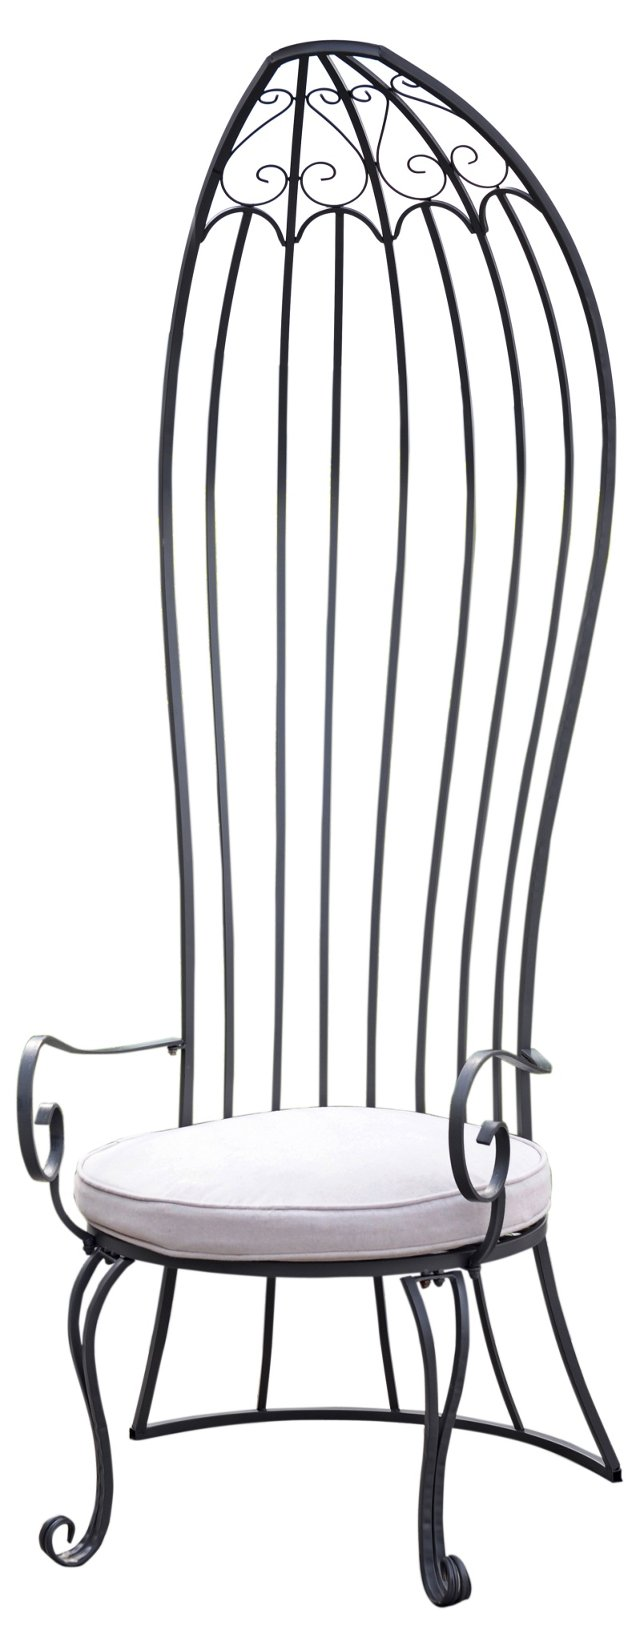 Chateau Outdoor Chair